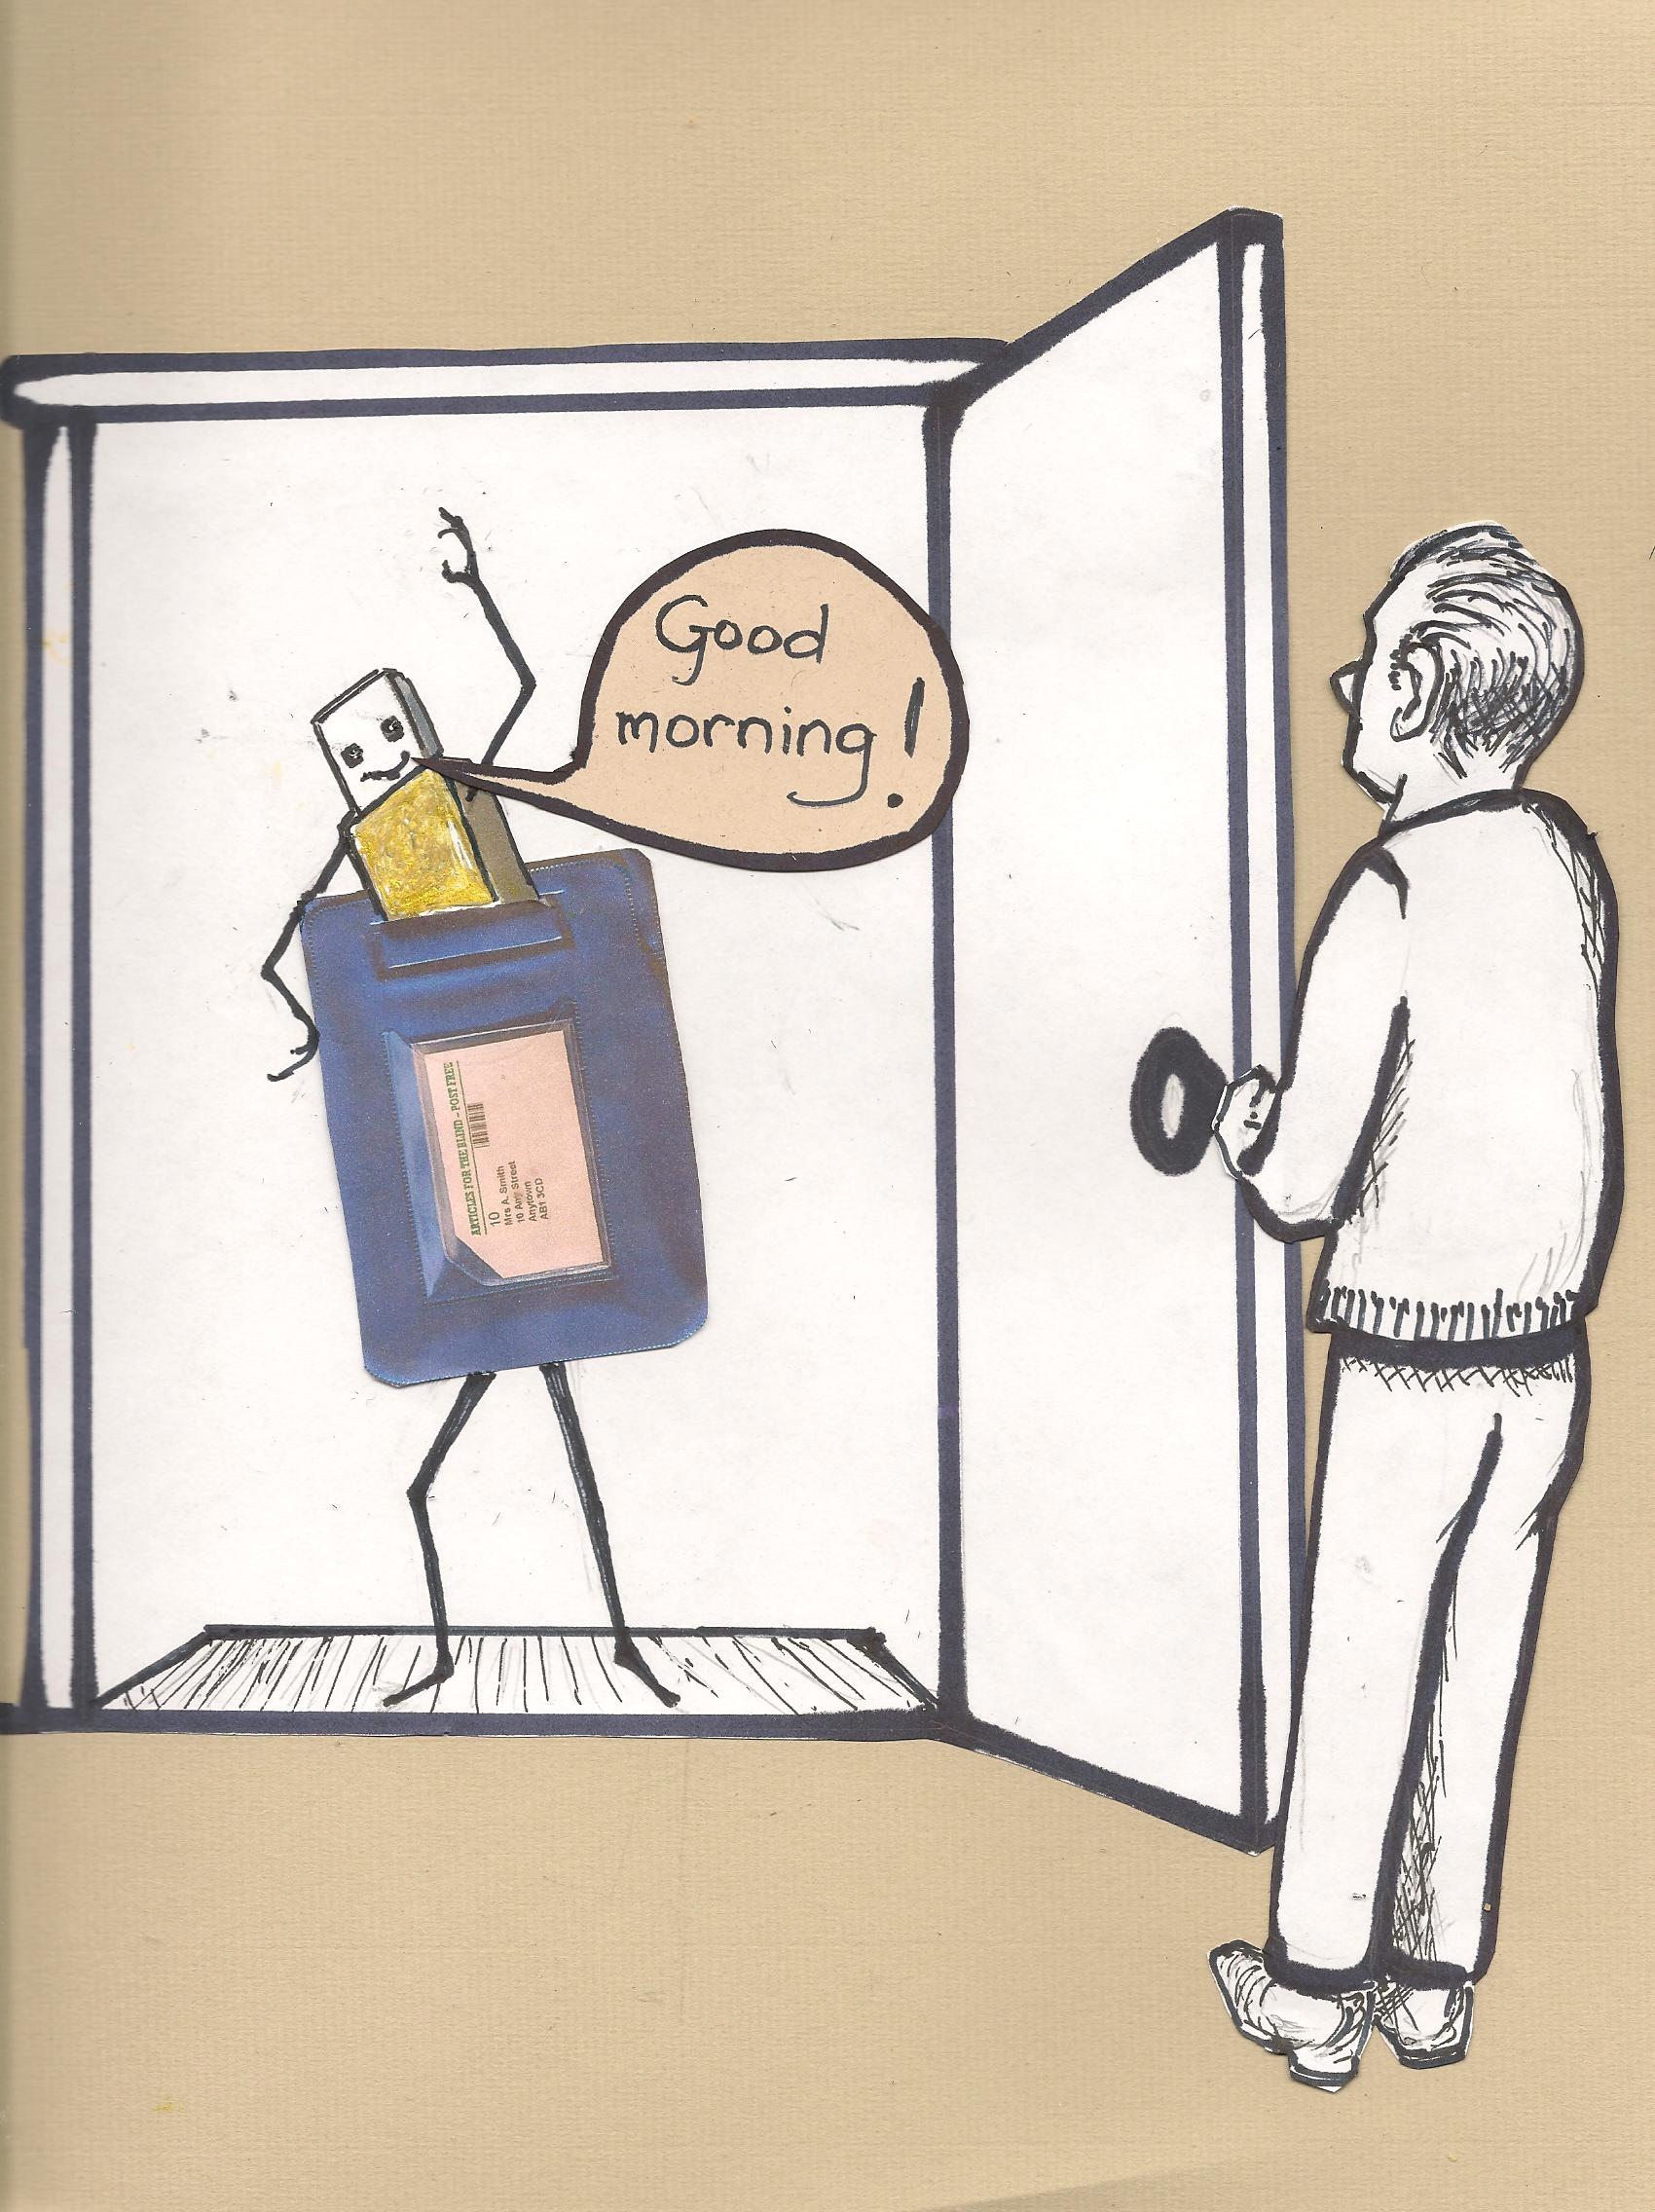 A cartoon memory stick announces its arrival with a cheery 'Good Morning' at the door of a Listener.